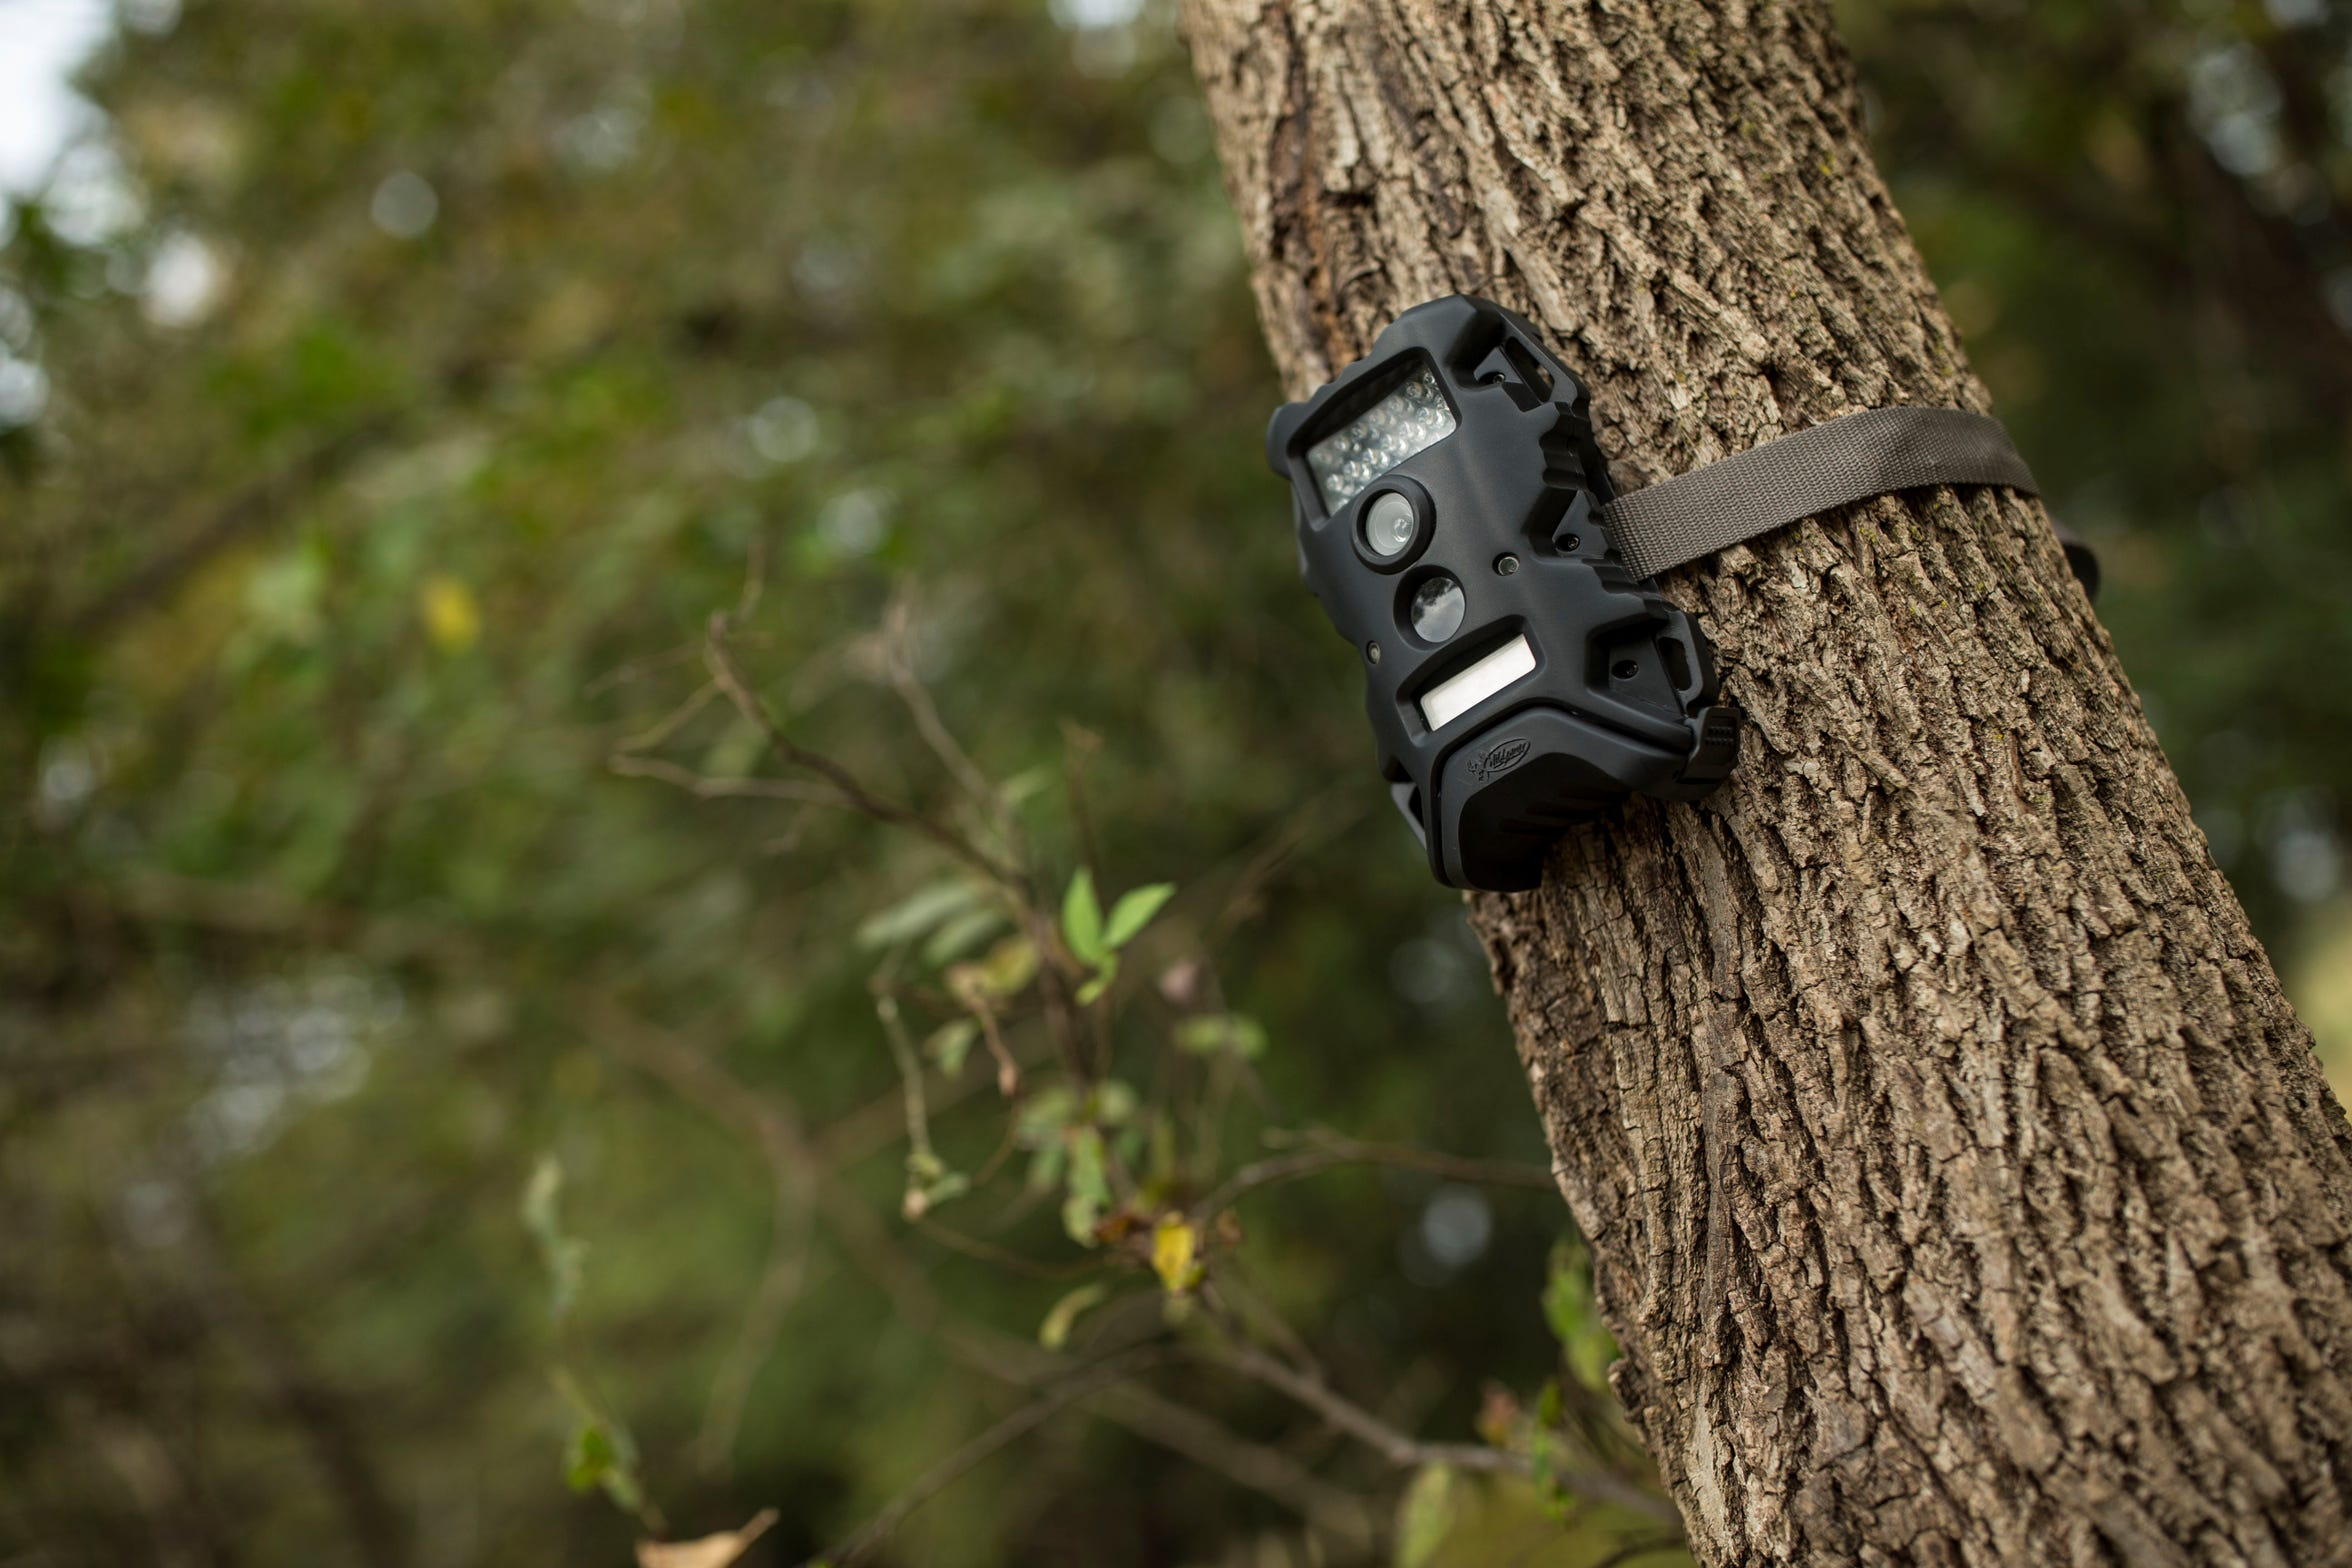 Wildgame sells a wide variety of trail cameras for less than $100.